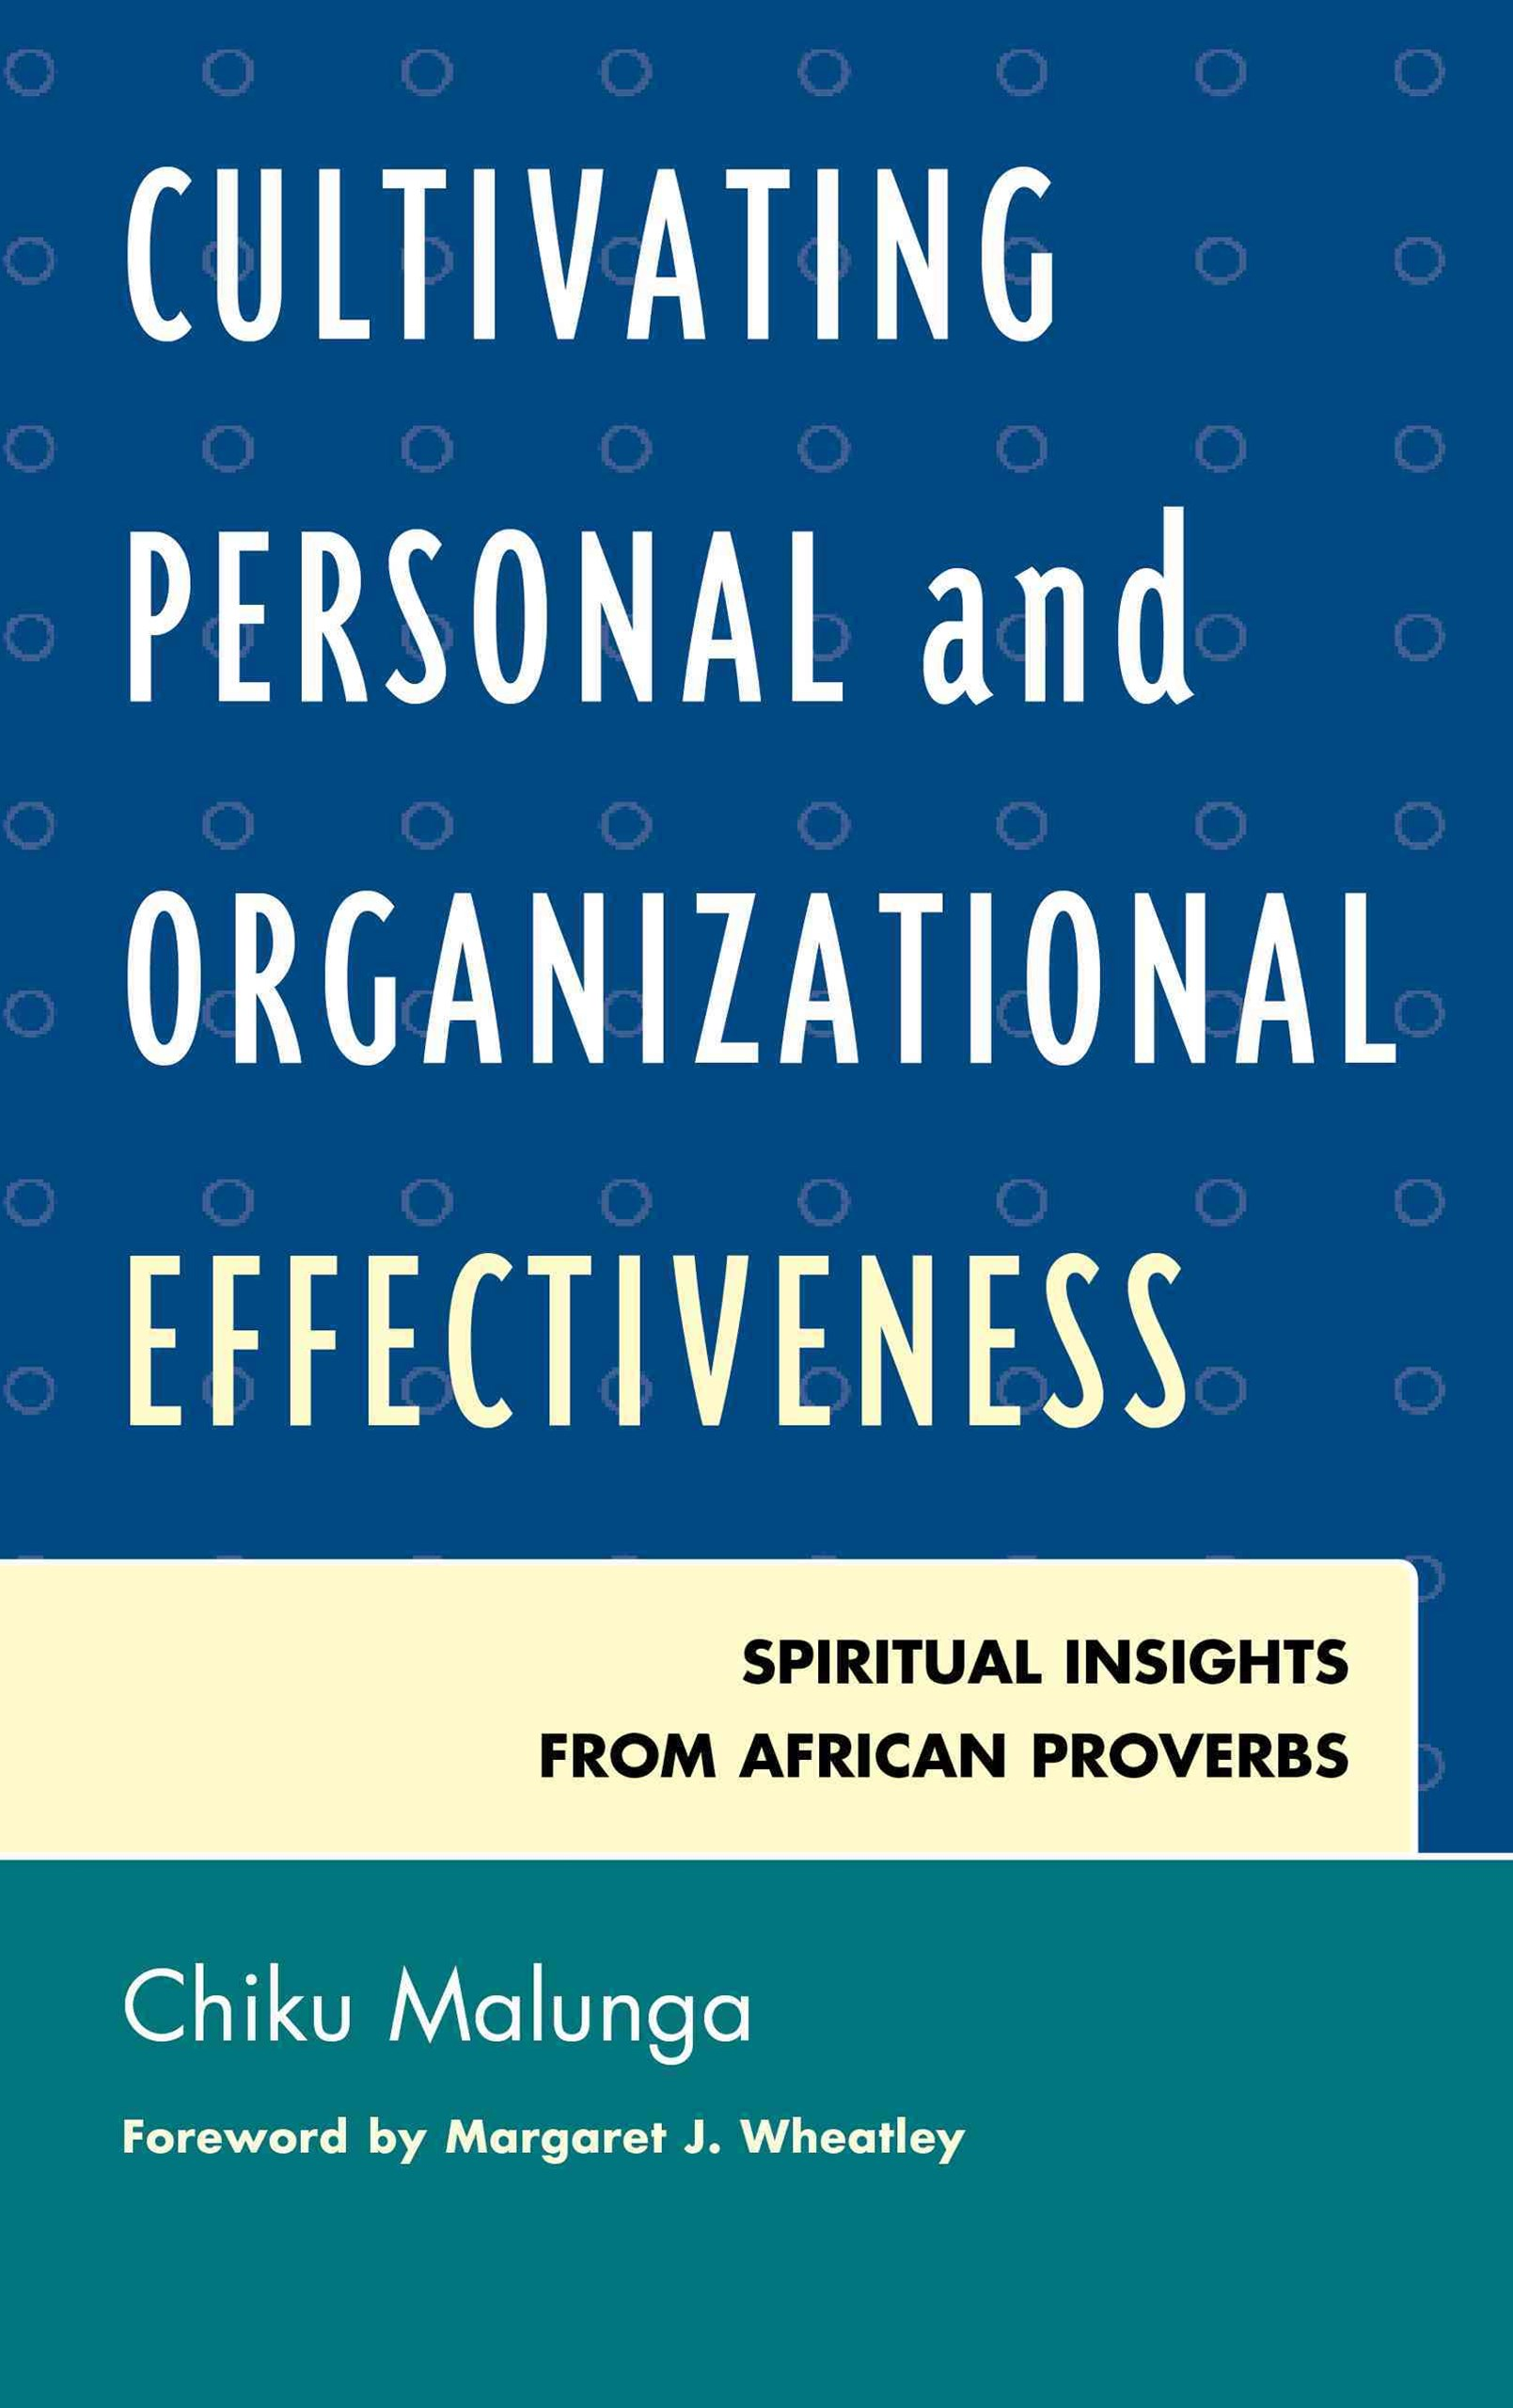 Cultivating Personal and Organizational Effectiveness